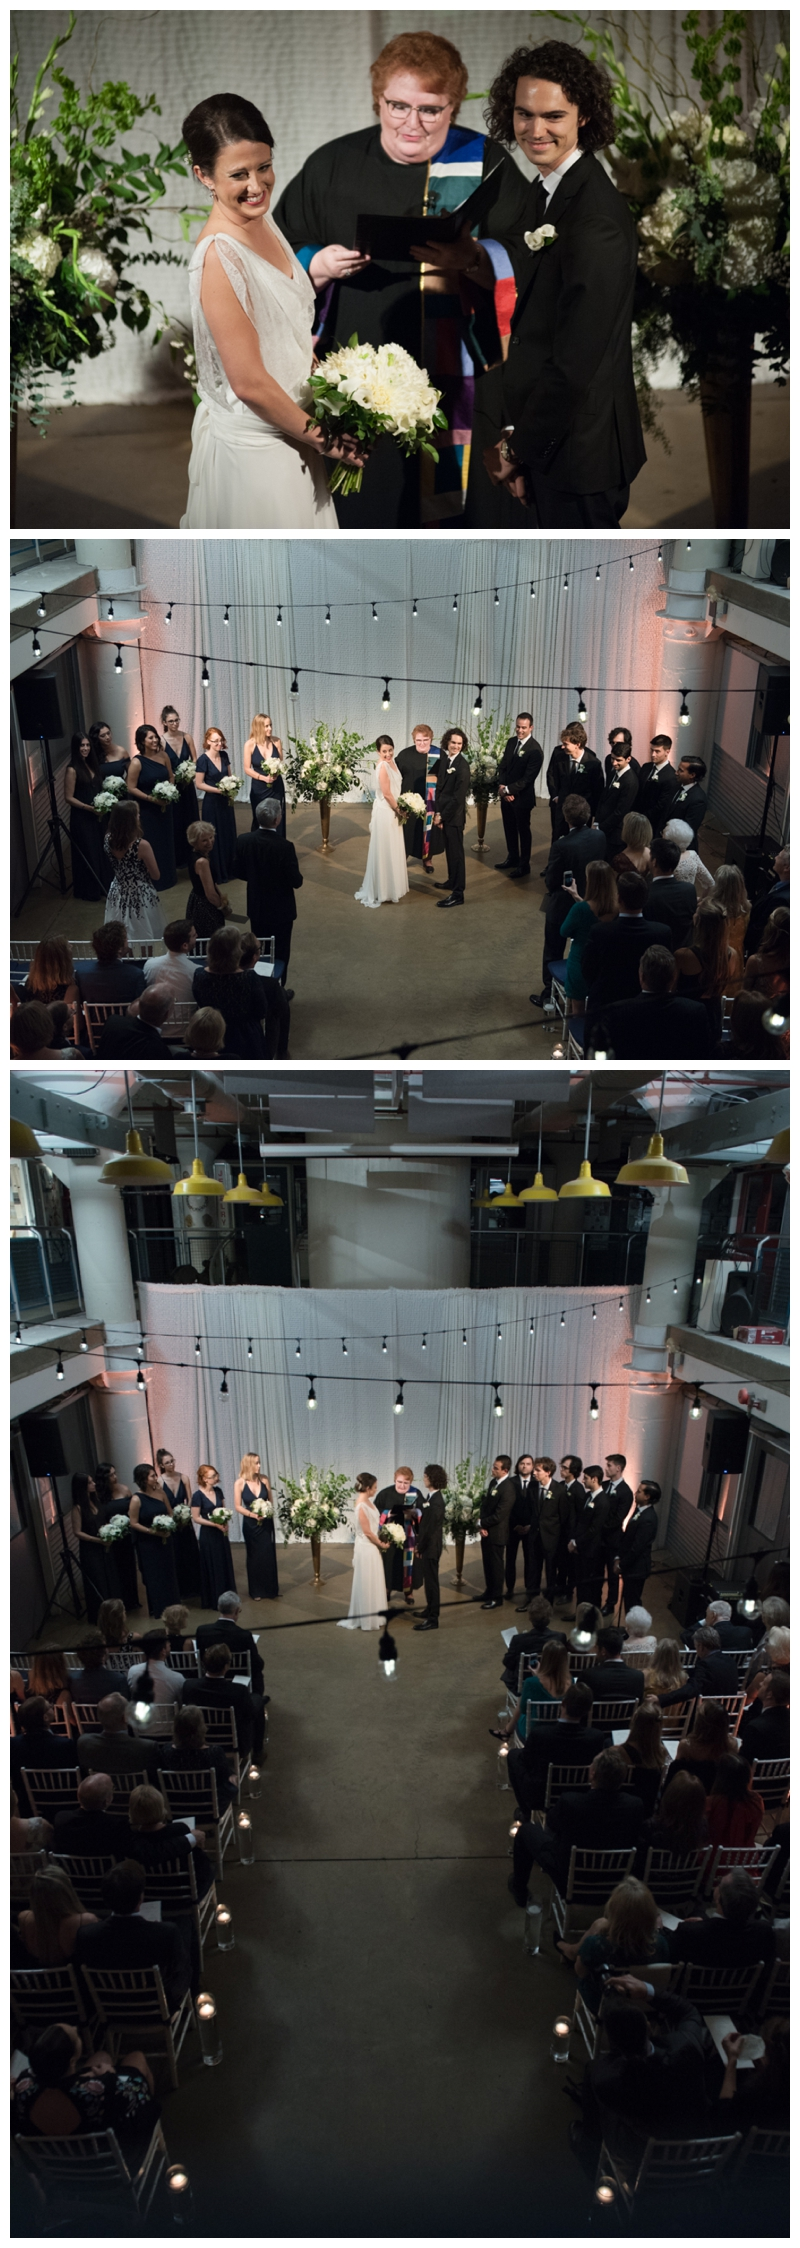 Wedding in Old Town Alexandria Virginia at the Torpedo Factory Art Center by Rachael Foster Photography_0065.jpg